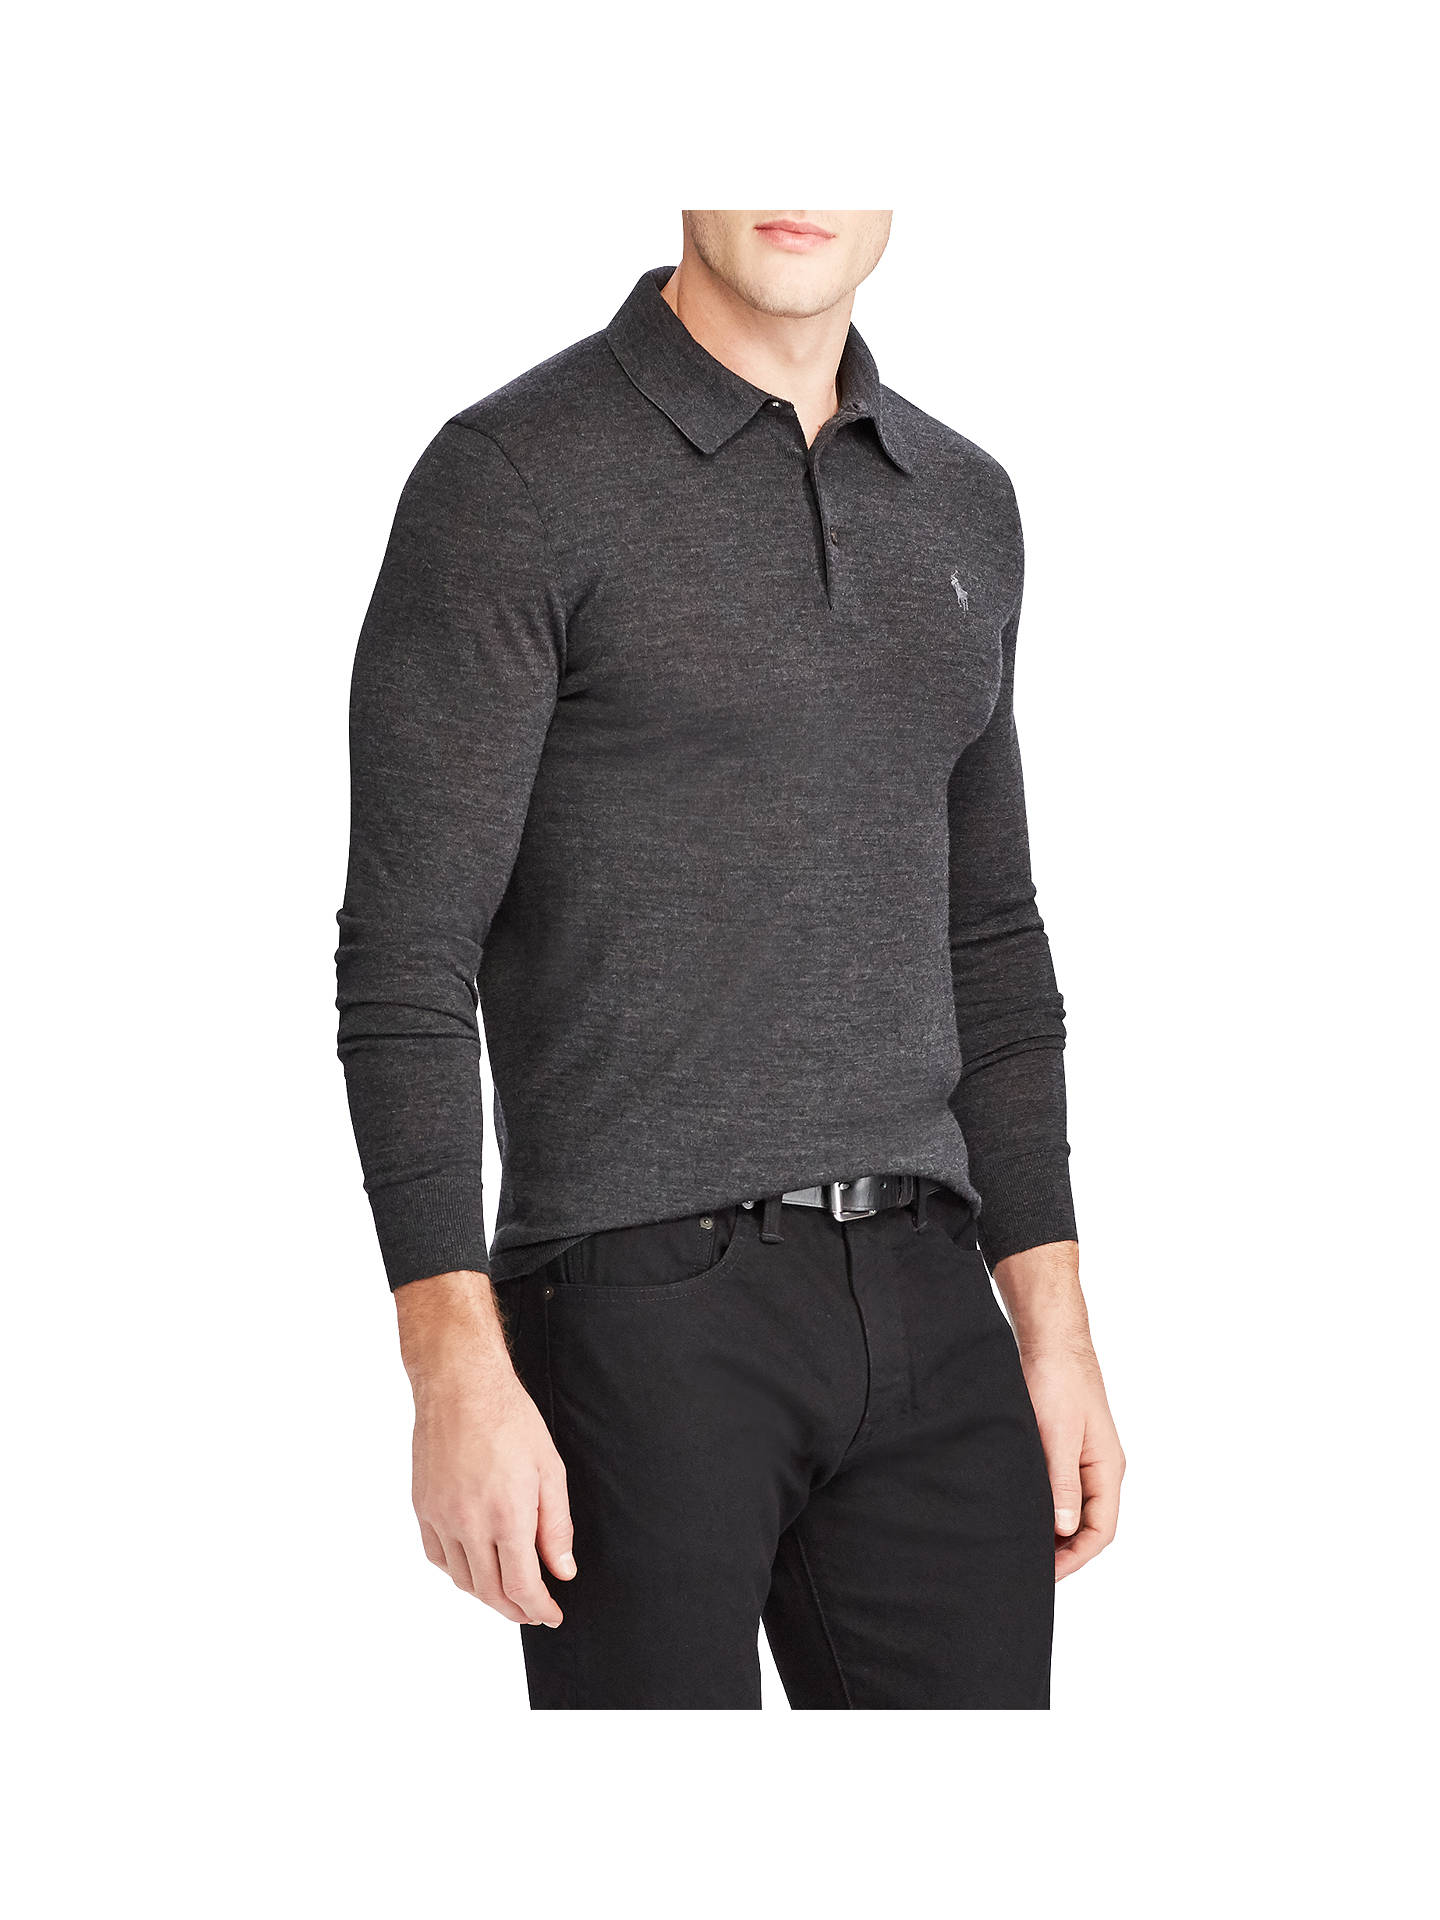 BuyPolo Ralph Lauren Knit Long Sleeve Polo Jumper, Dark Granite Heather, S  Online at ... a02be02e8bf9